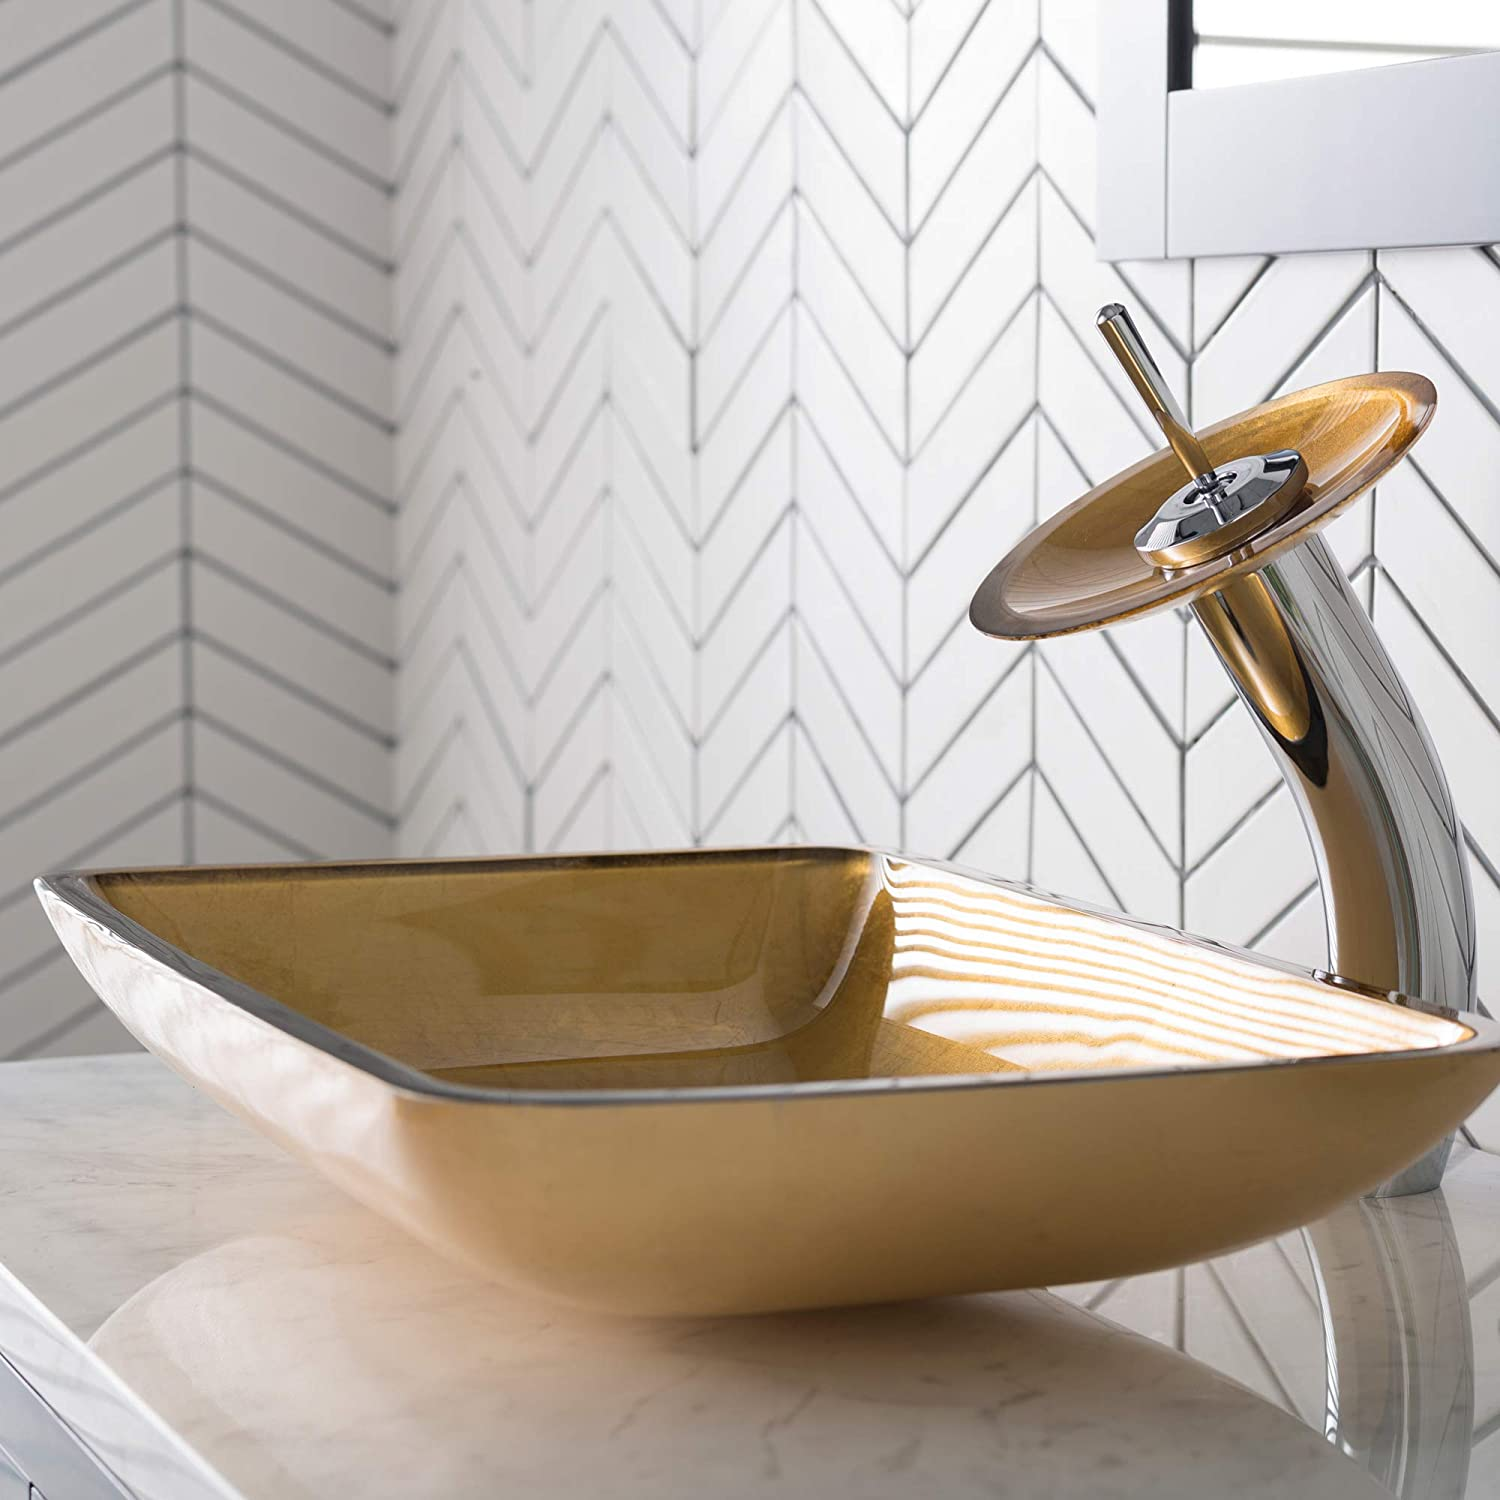 Kraus C-GV-580-12mm-10ORB Copper Illusion Glass Vessel Sink and Waterfall Faucet Oil Rubbed Bronze